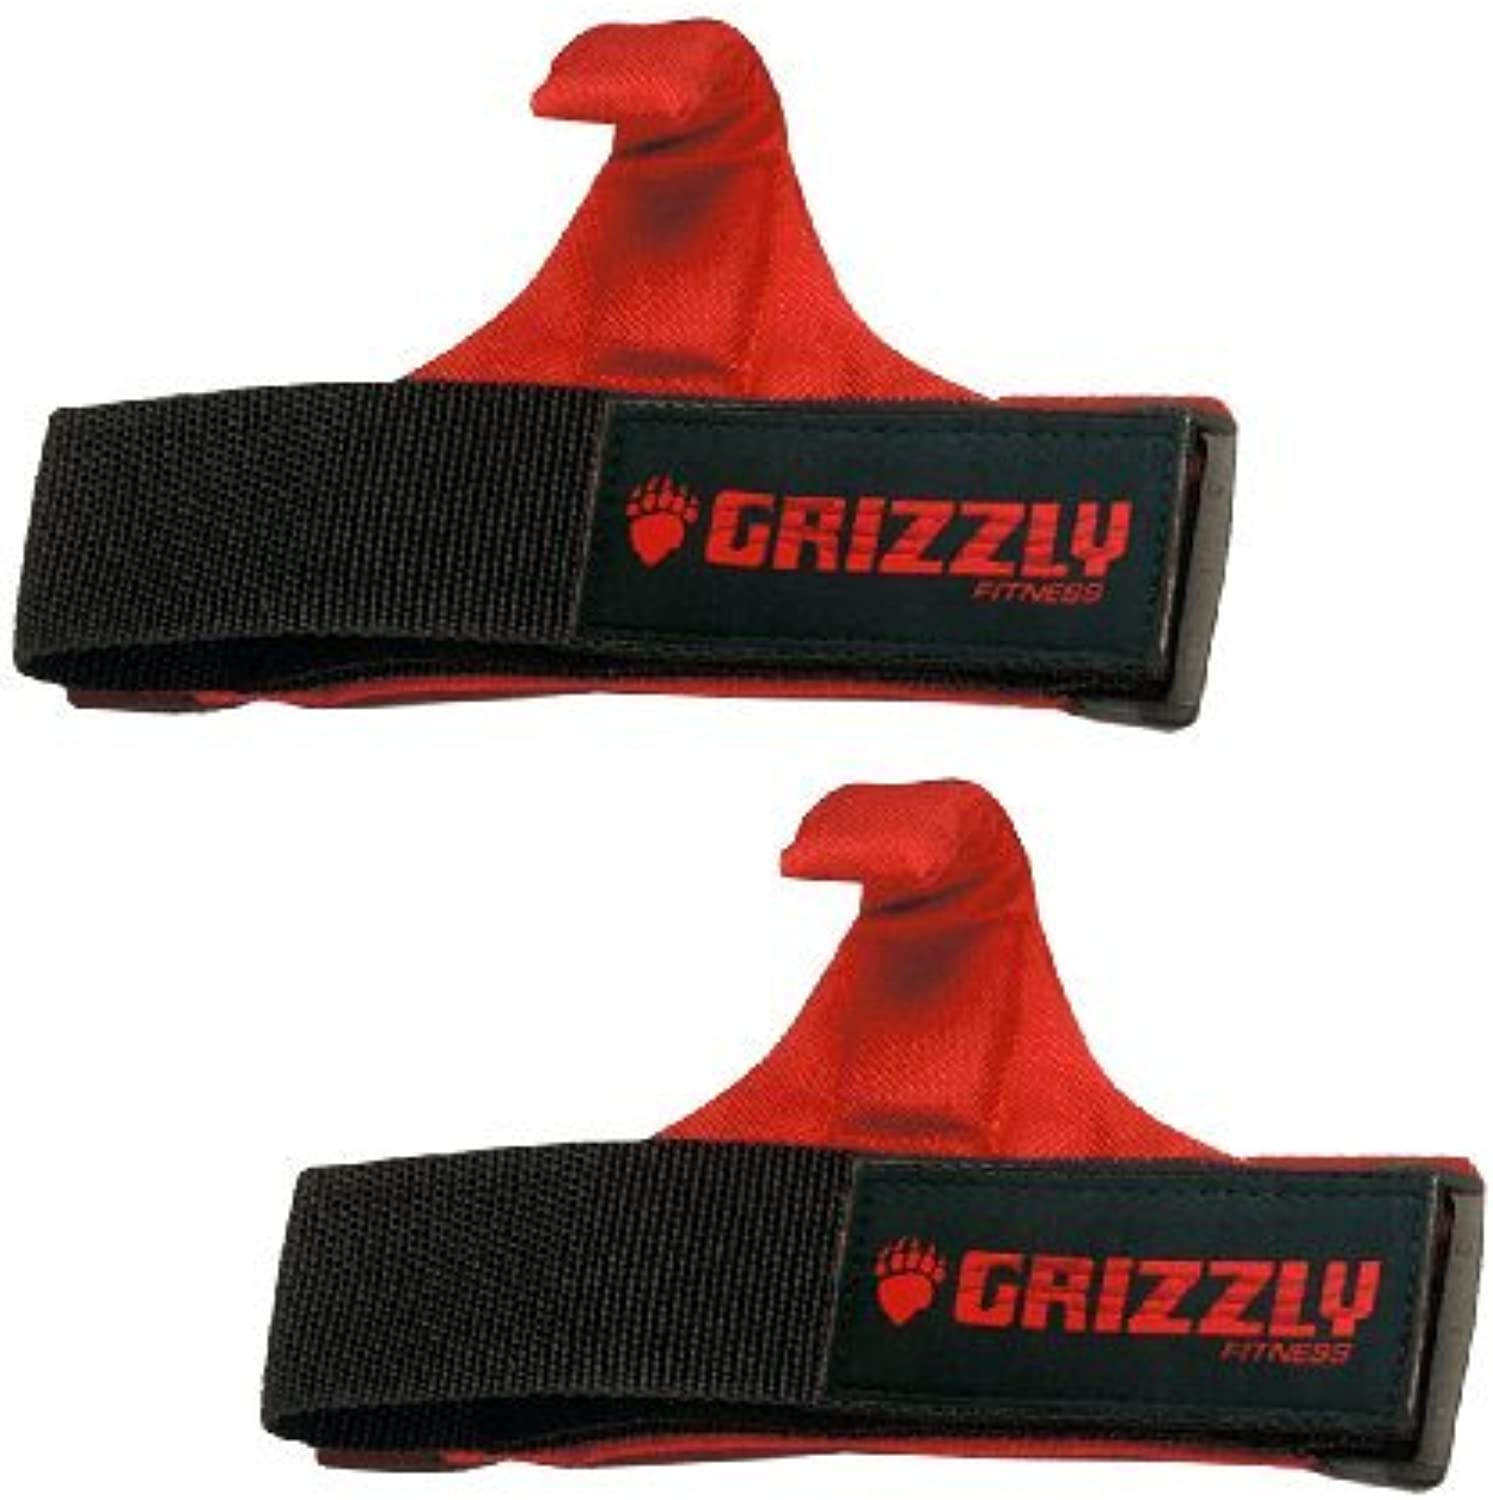 Grizzly Fitness Power Claw Lifting Hooks by Grizzly Fitness